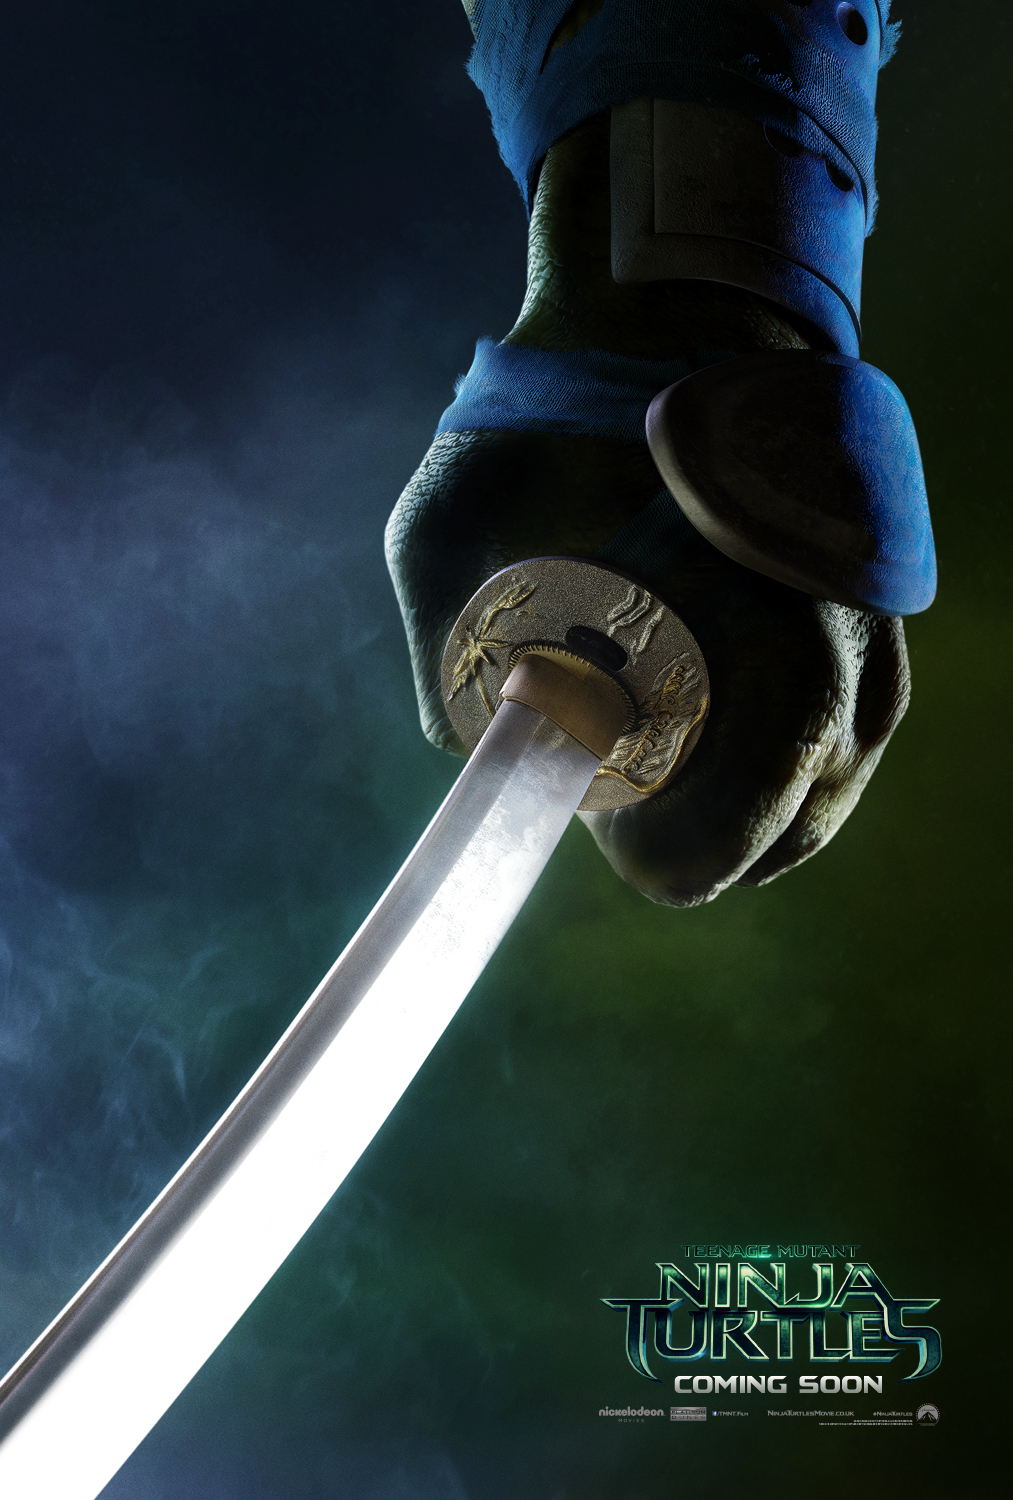 Teenage Mutant Ninja Turtles Teaser poster – Leonardo